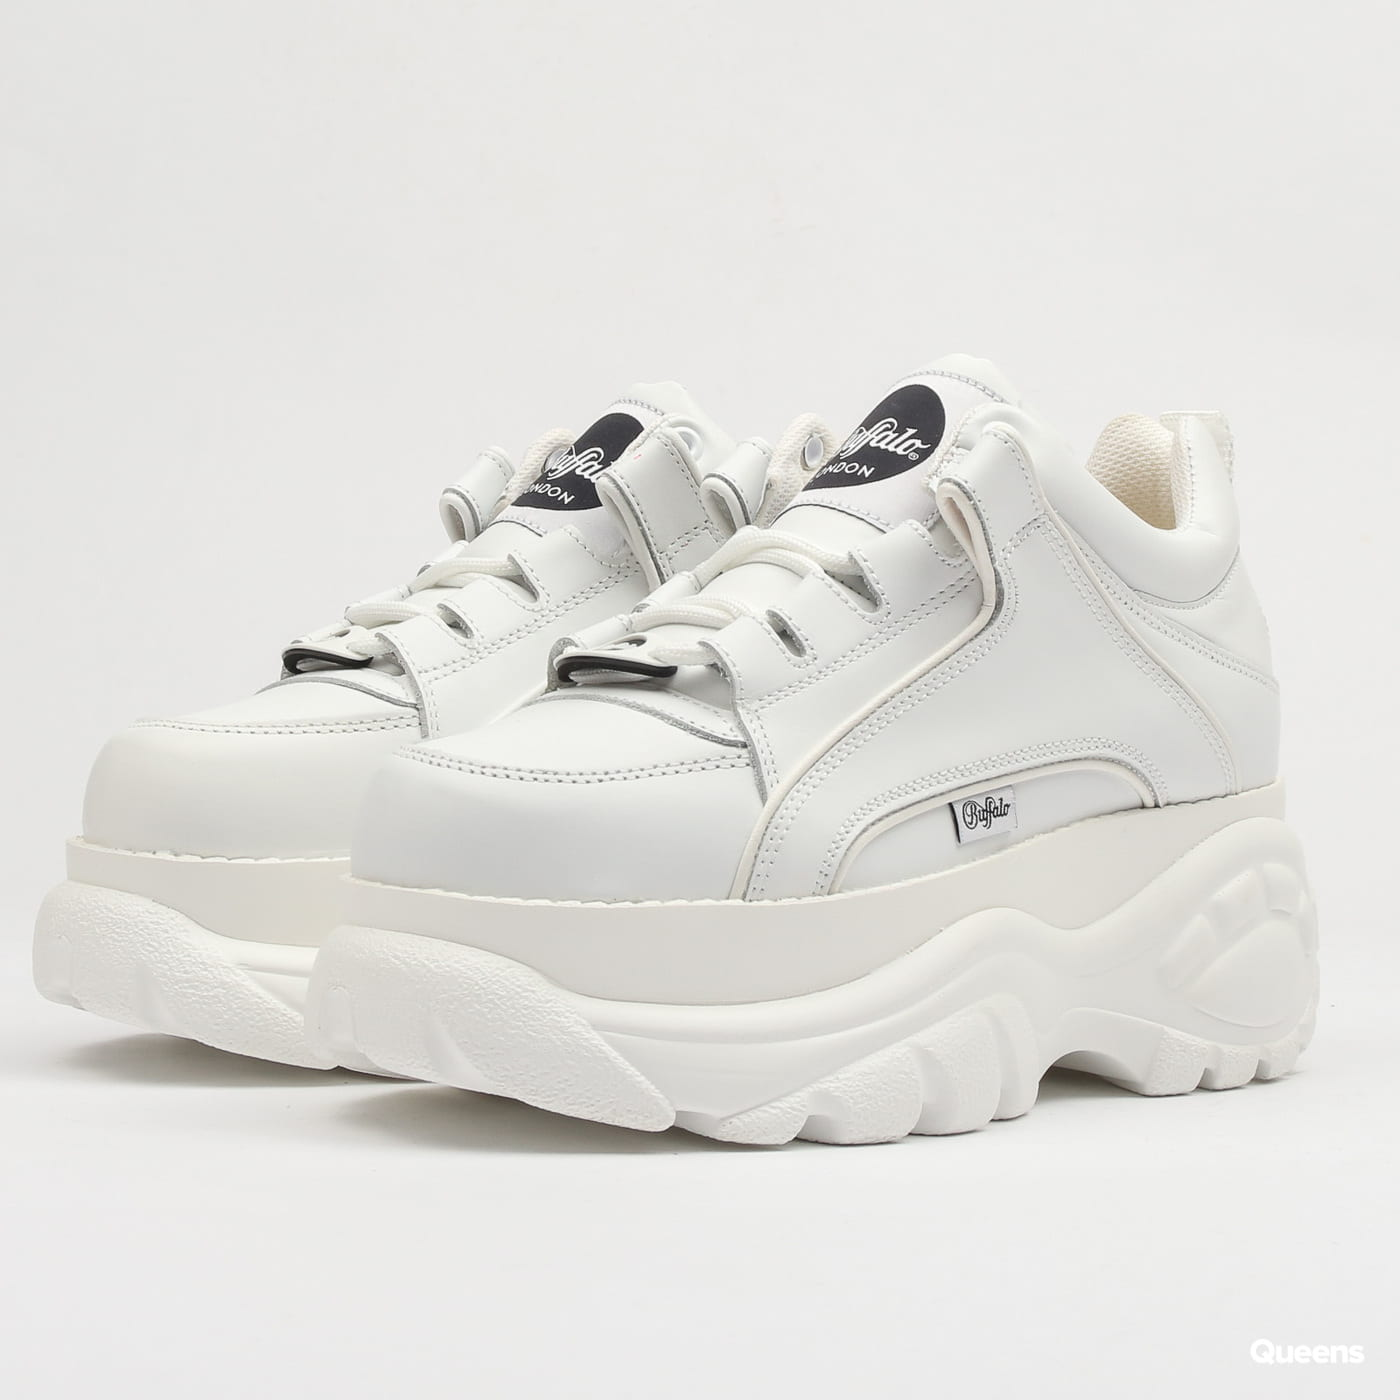 buffalo classic low white patent leather